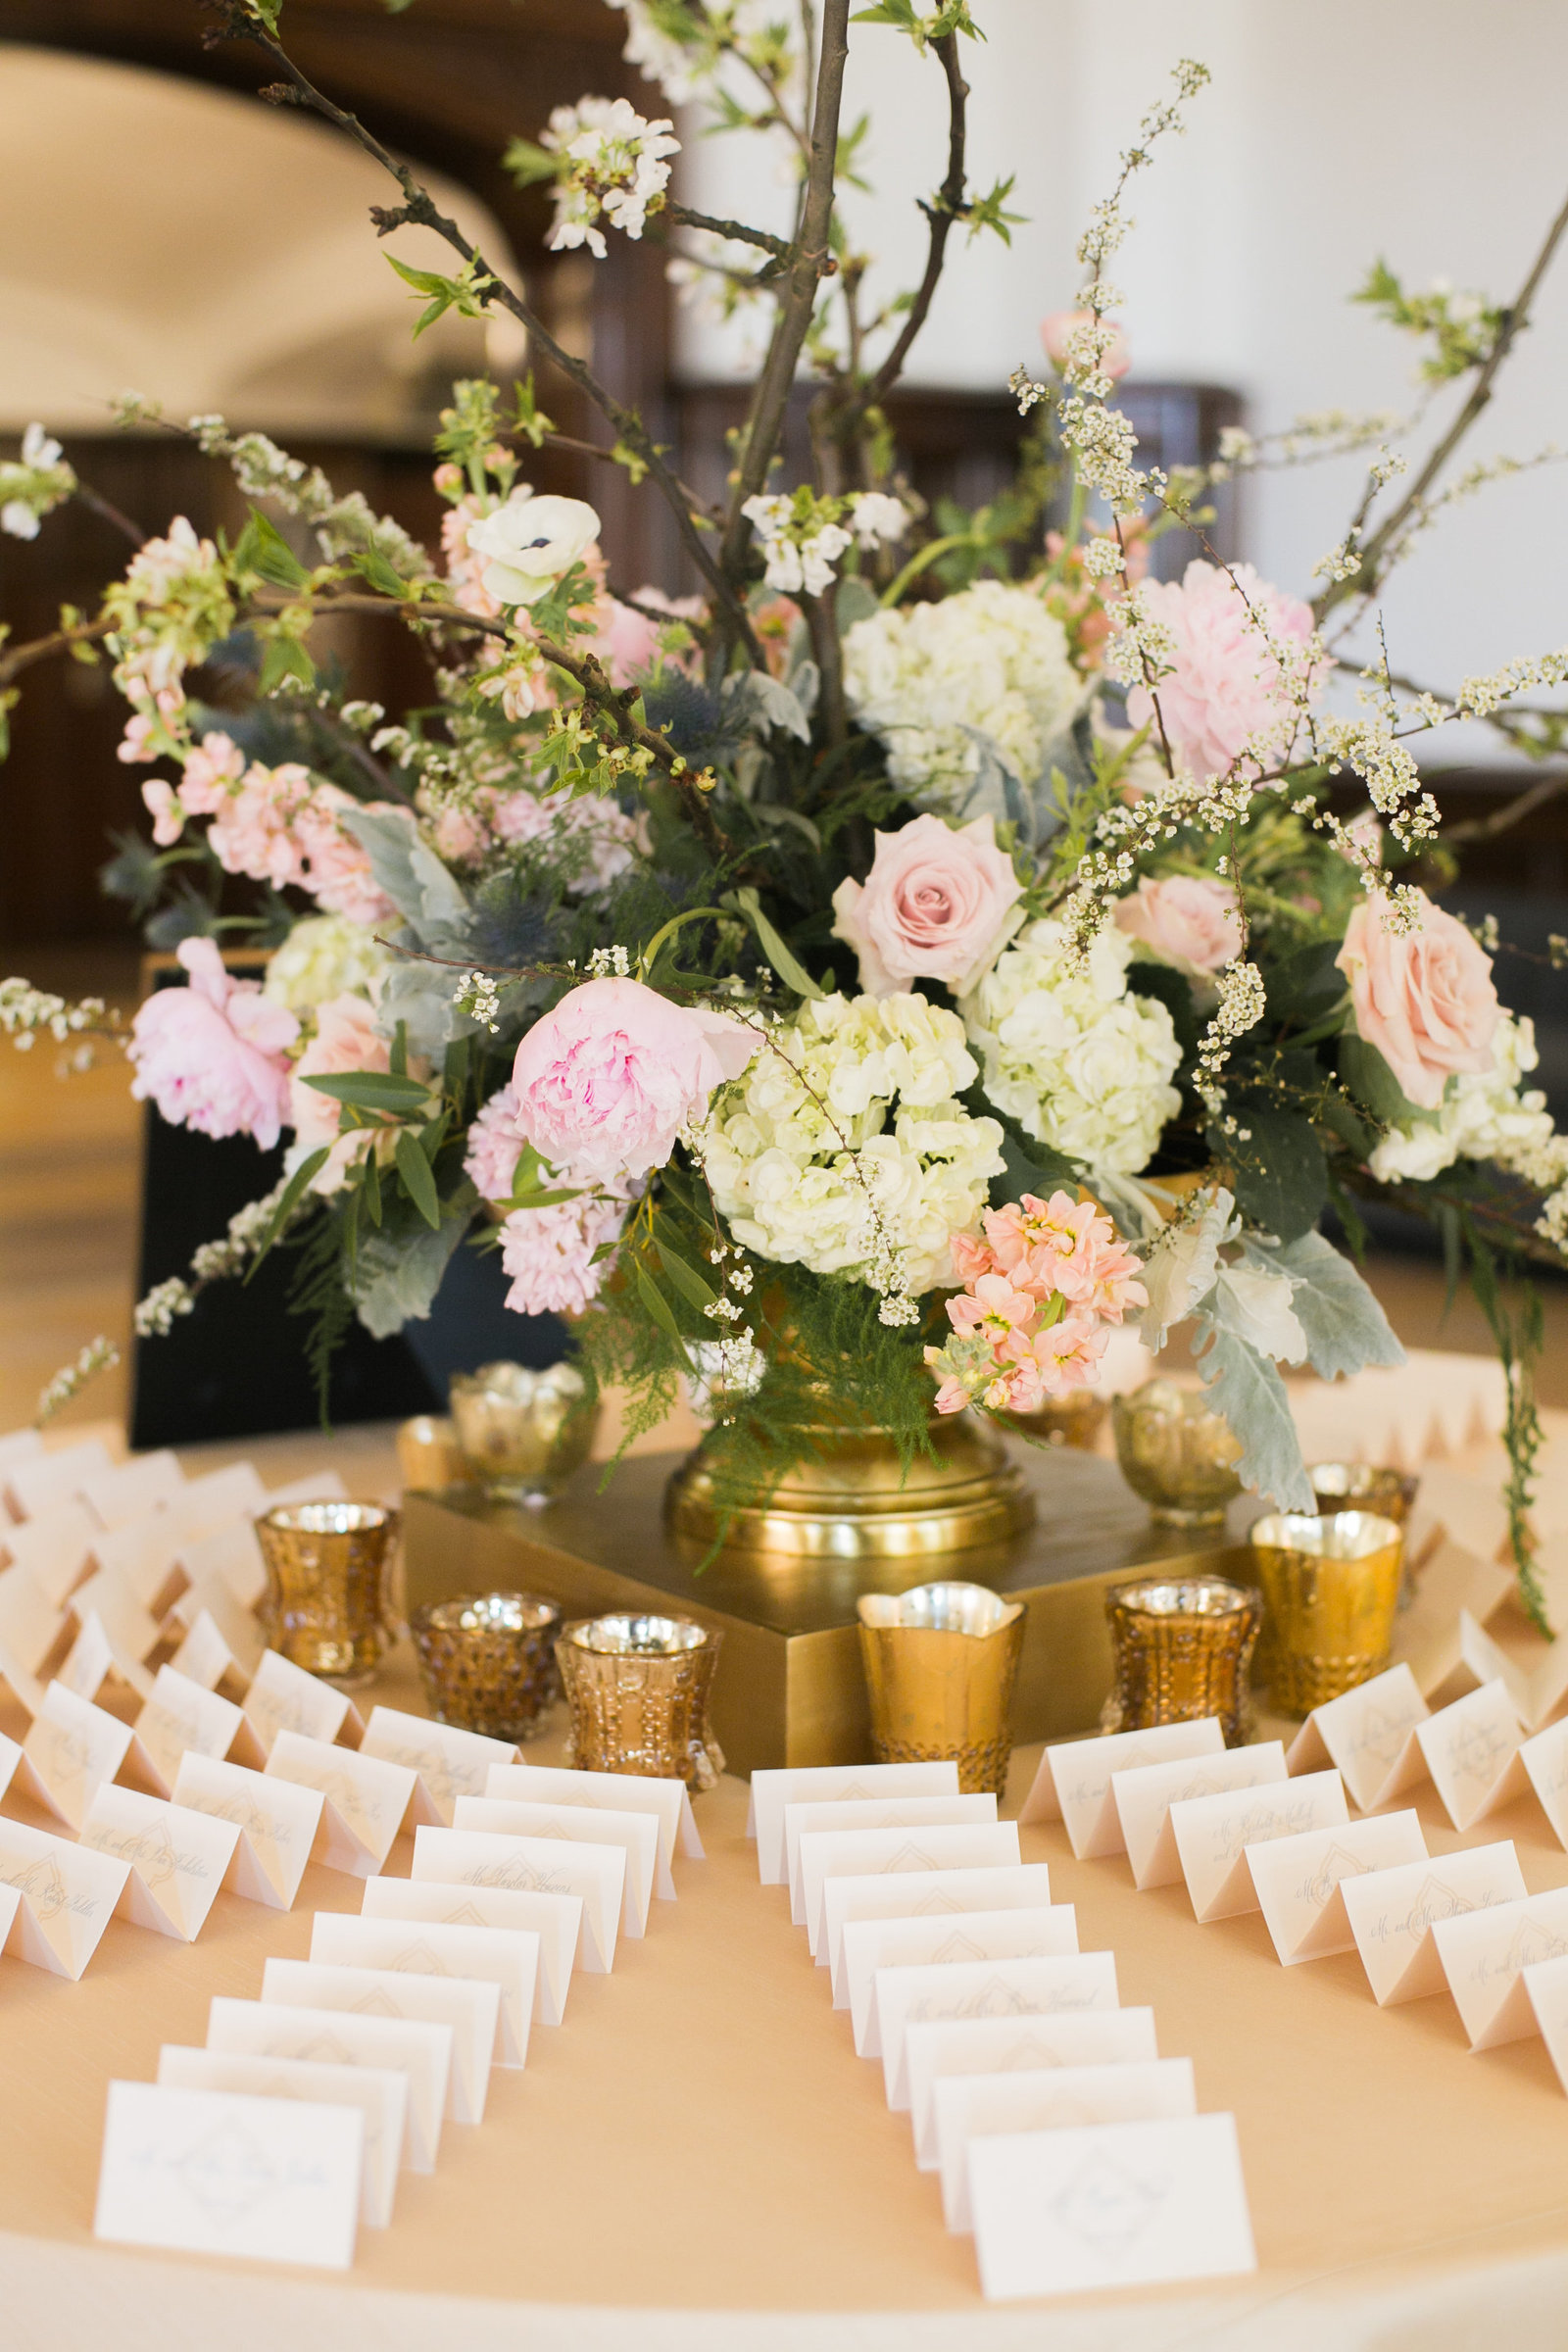 Wedding_Planner_Kansas_City_Madison_Sanders_Events_Brass_on_Baltimore_Spring_-19